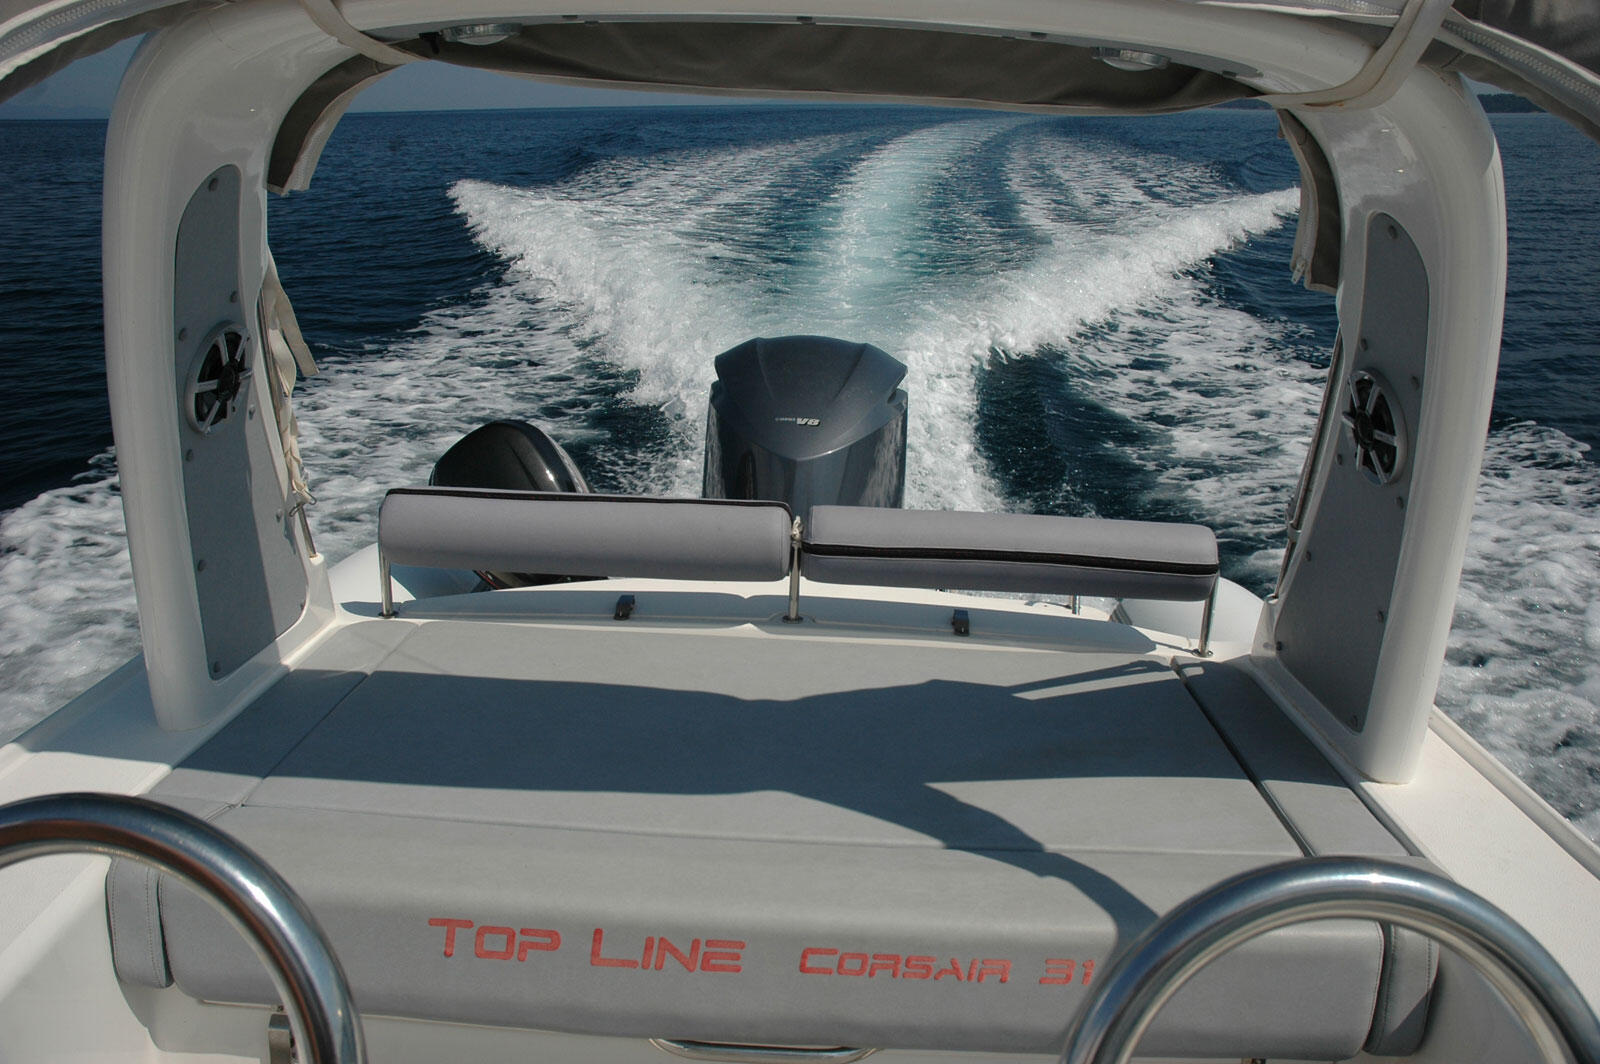 Top Line Corsair 31